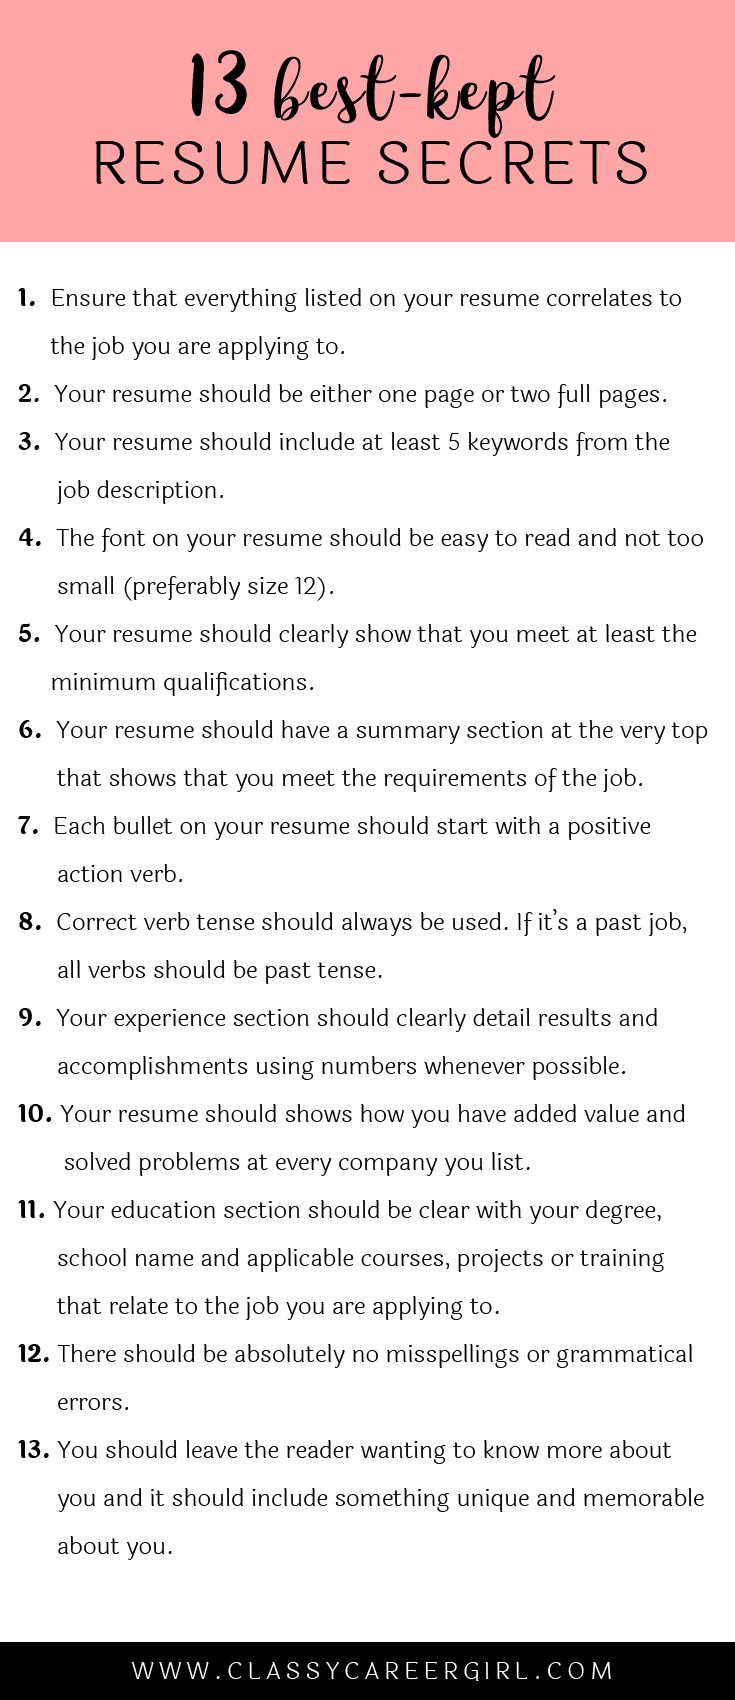 Opposenewapstandardsus  Mesmerizing  Ideas About Resume On Pinterest  Cv Format Resume Cv And  With Engaging Some Hiring Managers Will Toss Your Resume Out If You Dont Know These  With Attractive Resume Copy Also Well Designed Resume In Addition Inside Sales Representative Resume And Resume Skills For Retail As Well As Minimalist Resume Template Additionally Nurse Aide Resume From Pinterestcom With Opposenewapstandardsus  Engaging  Ideas About Resume On Pinterest  Cv Format Resume Cv And  With Attractive Some Hiring Managers Will Toss Your Resume Out If You Dont Know These  And Mesmerizing Resume Copy Also Well Designed Resume In Addition Inside Sales Representative Resume From Pinterestcom